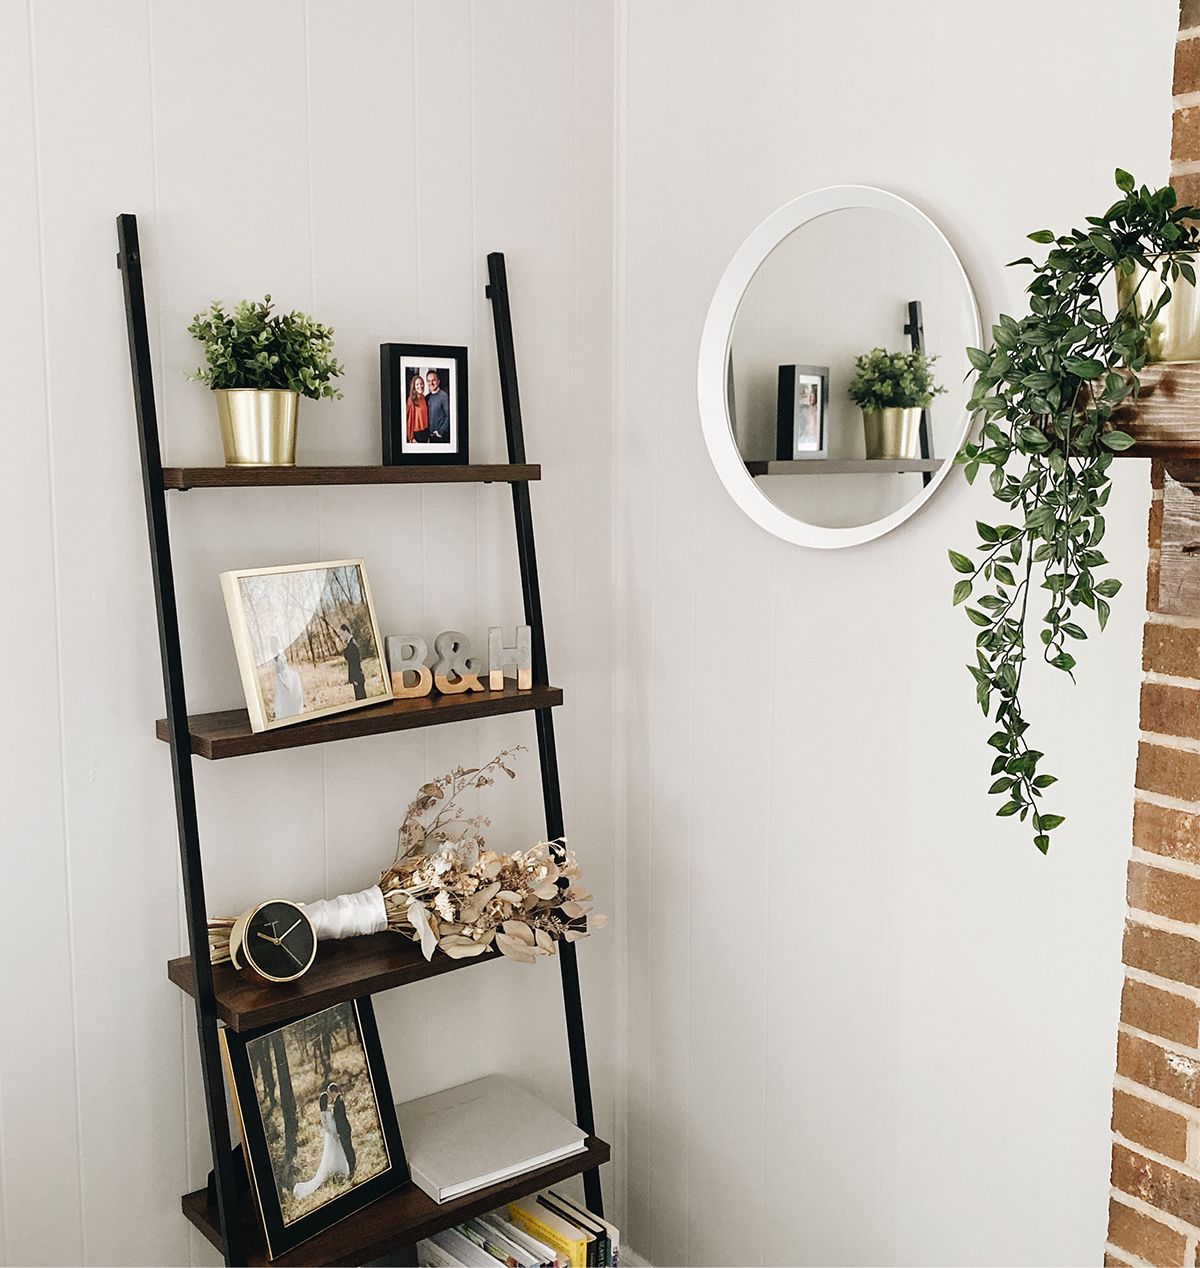 Photo by Brian Schindler of shelving display with photos frames and small plants